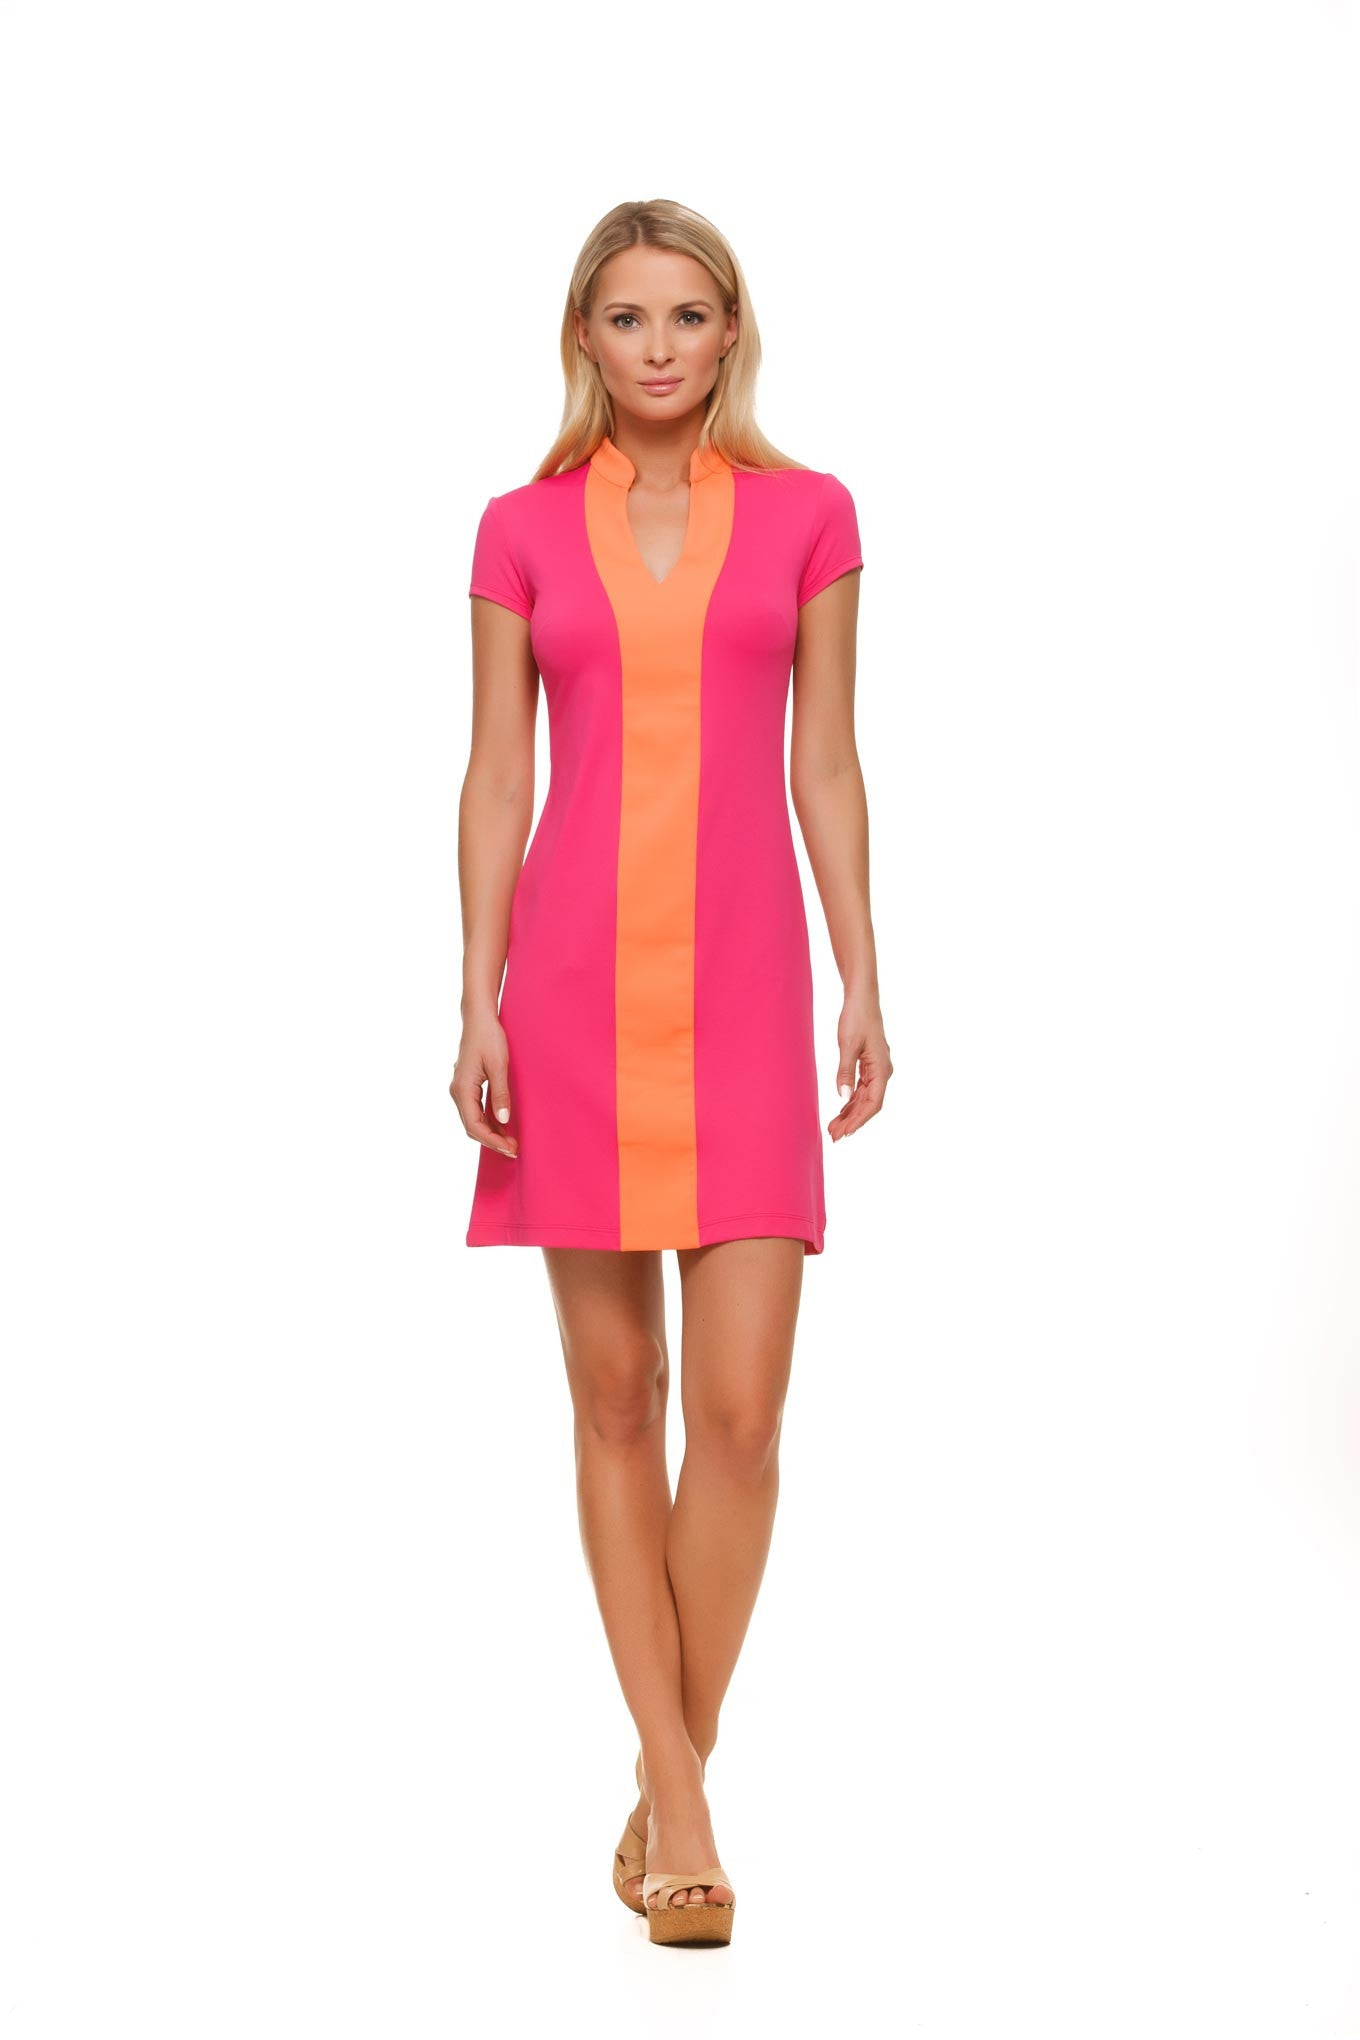 Colorblock dress with sleeves